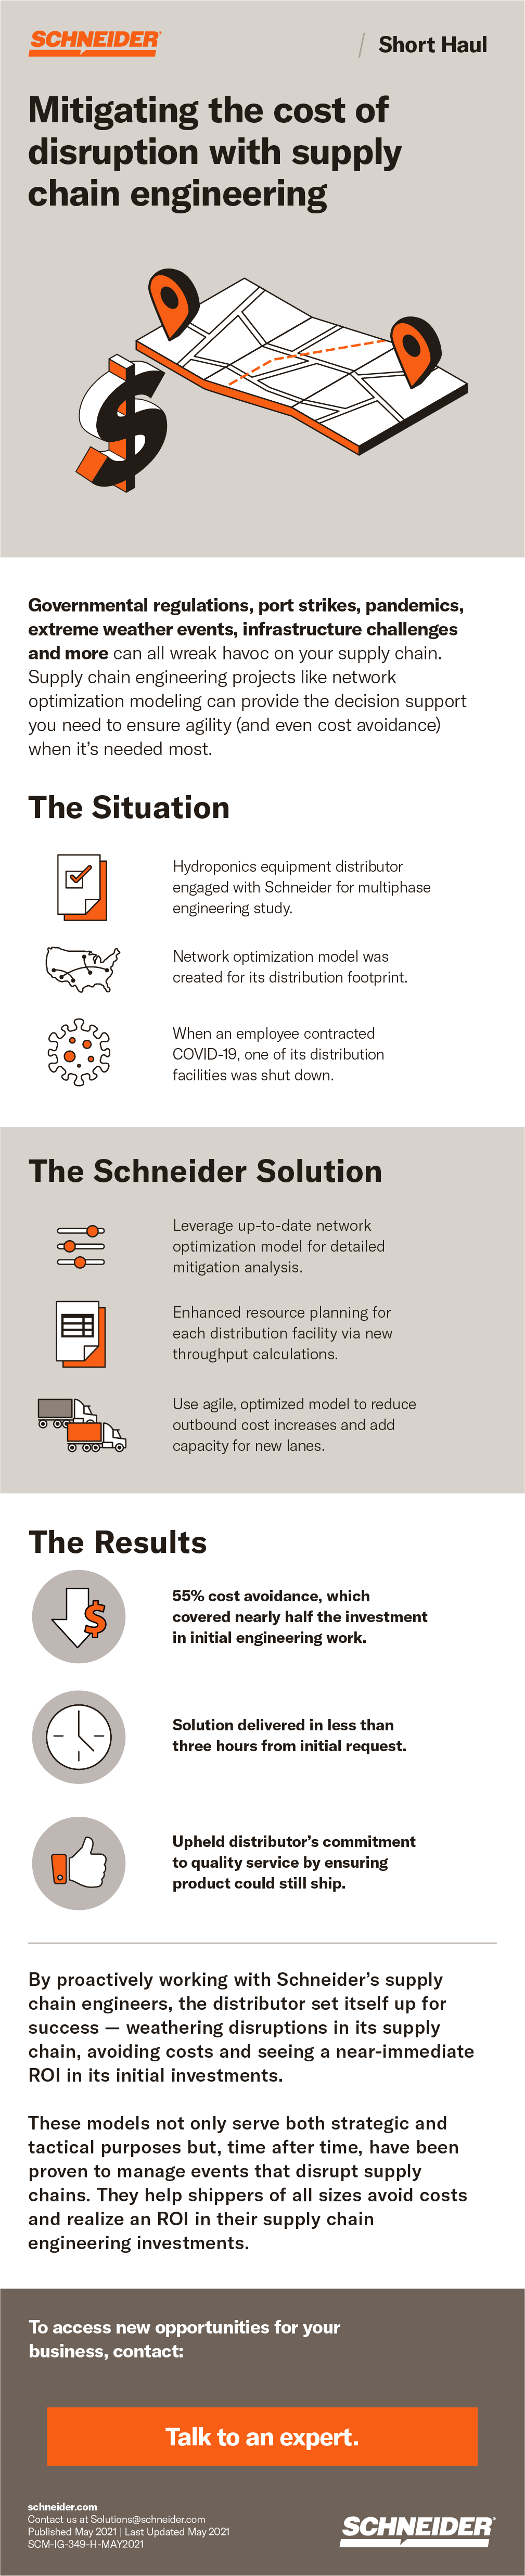 Infographic of how a distributor mitigated supply chain disruption with network optimization model